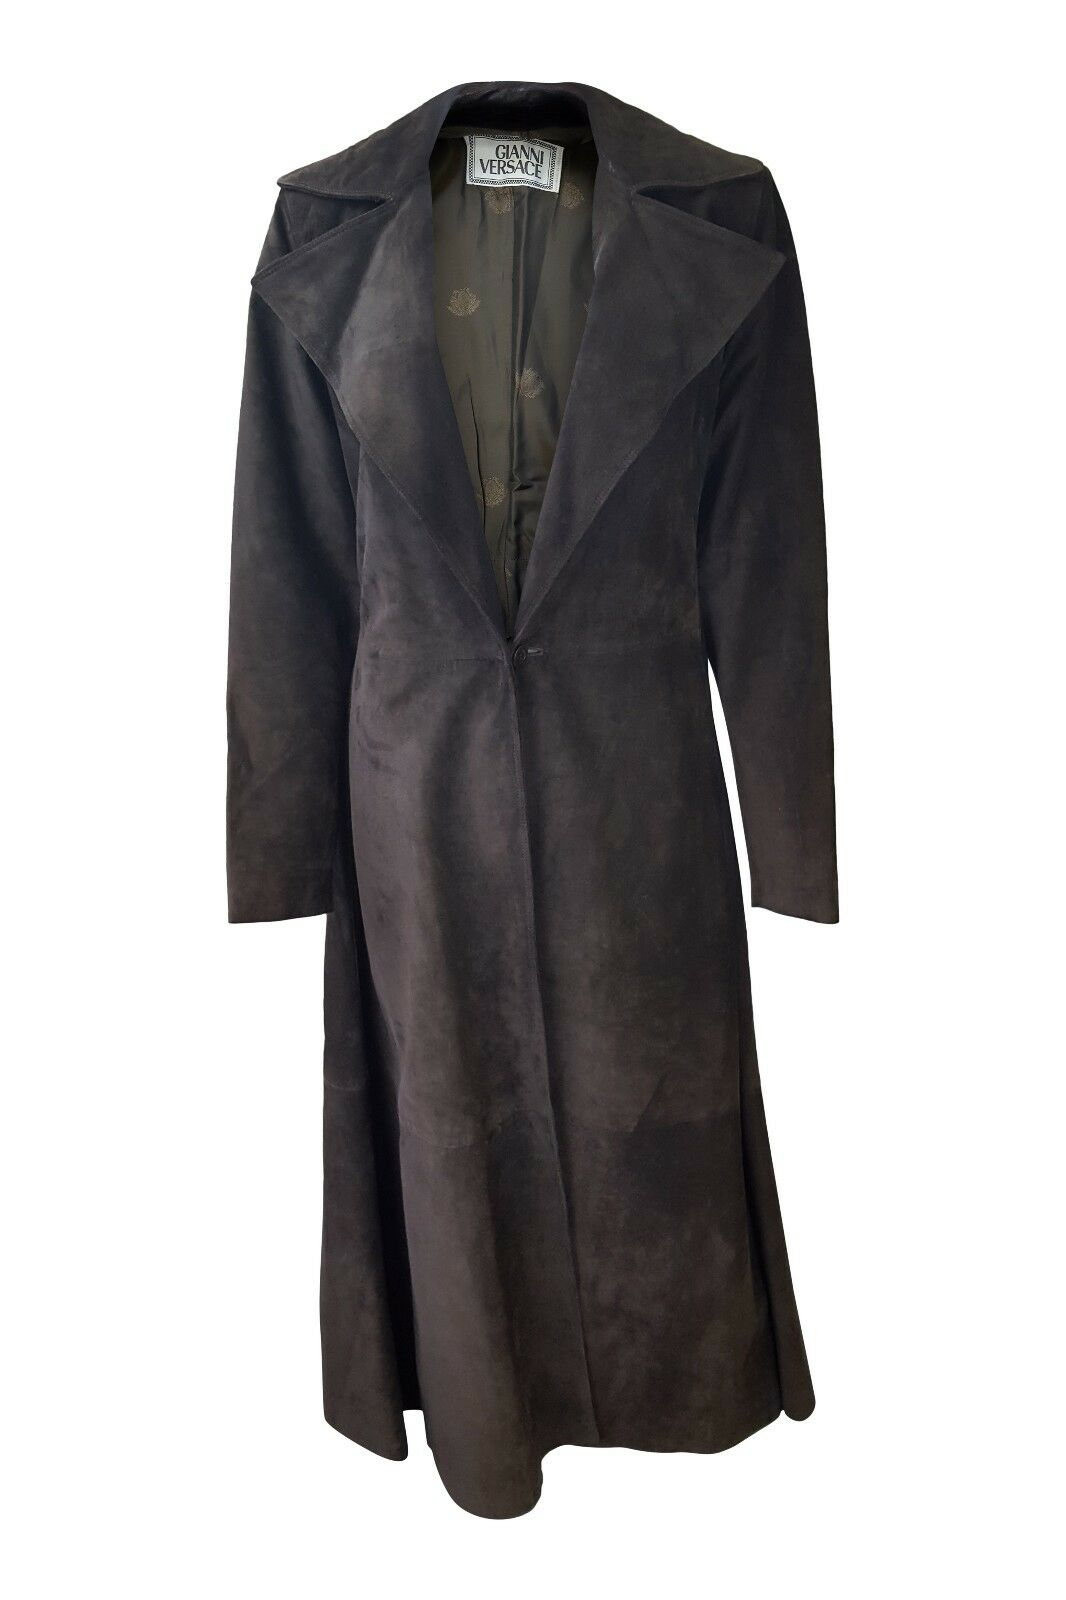 *VERSACE* GIANNI VERSACE VINTAGE BROWN LONG LEATHER COAT (40)